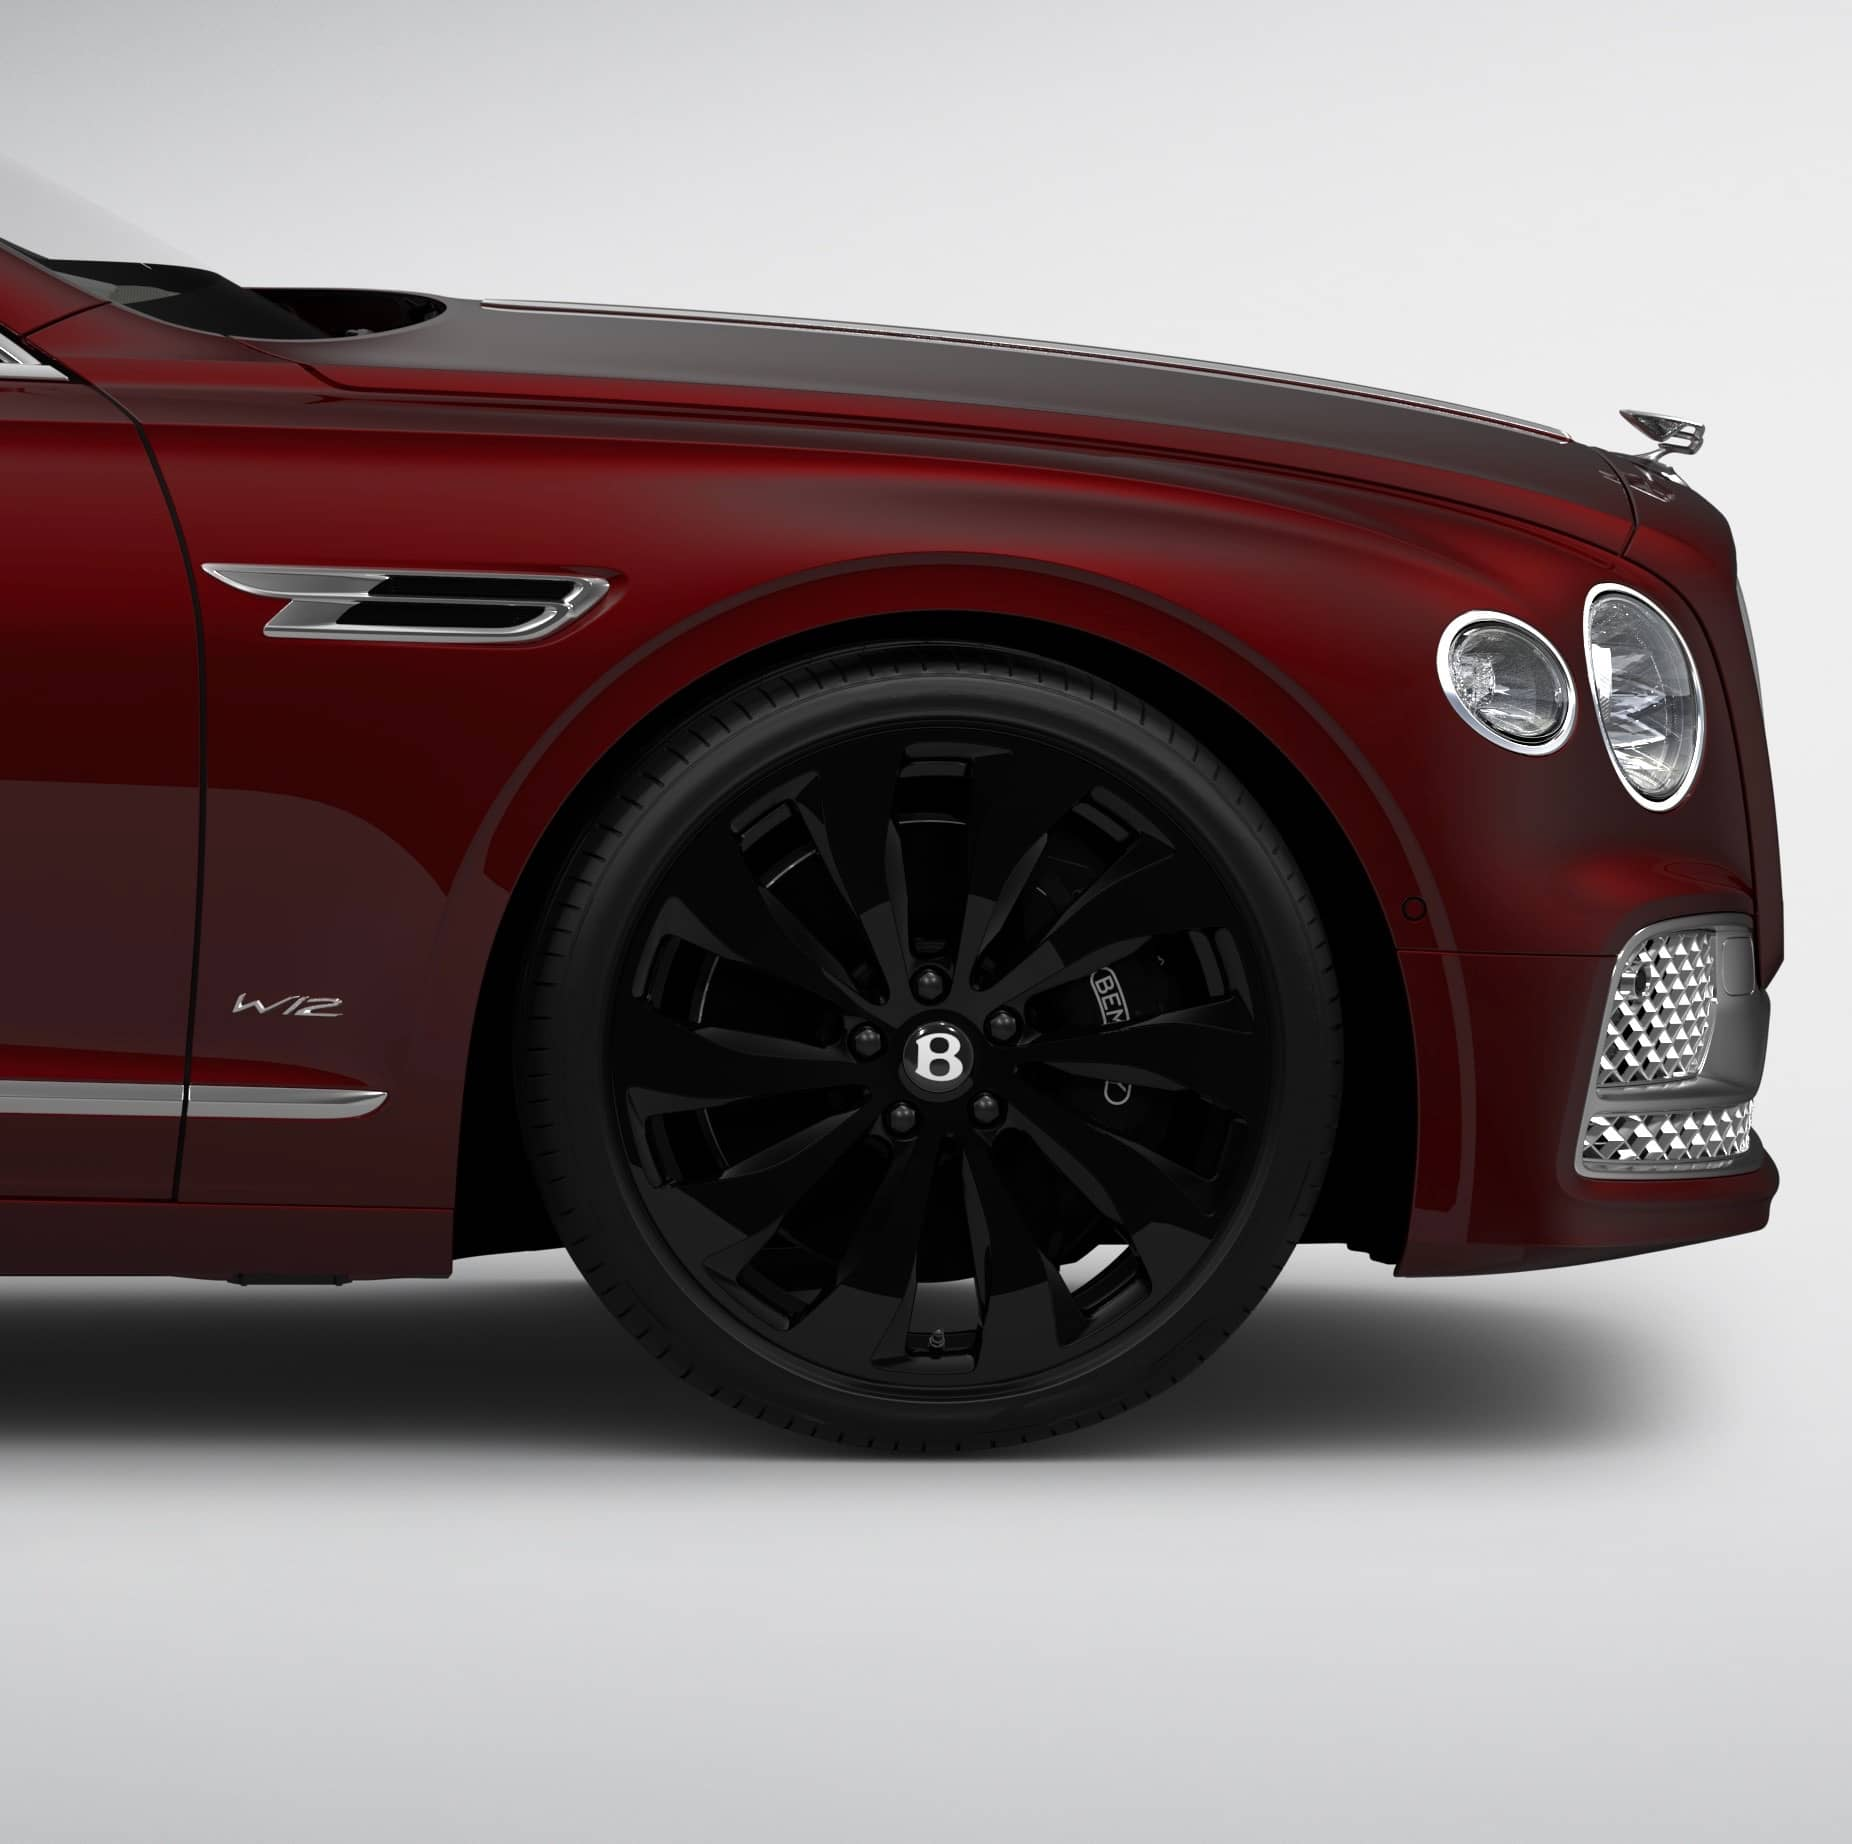 2021-bentley-flying-spur_100751304_h